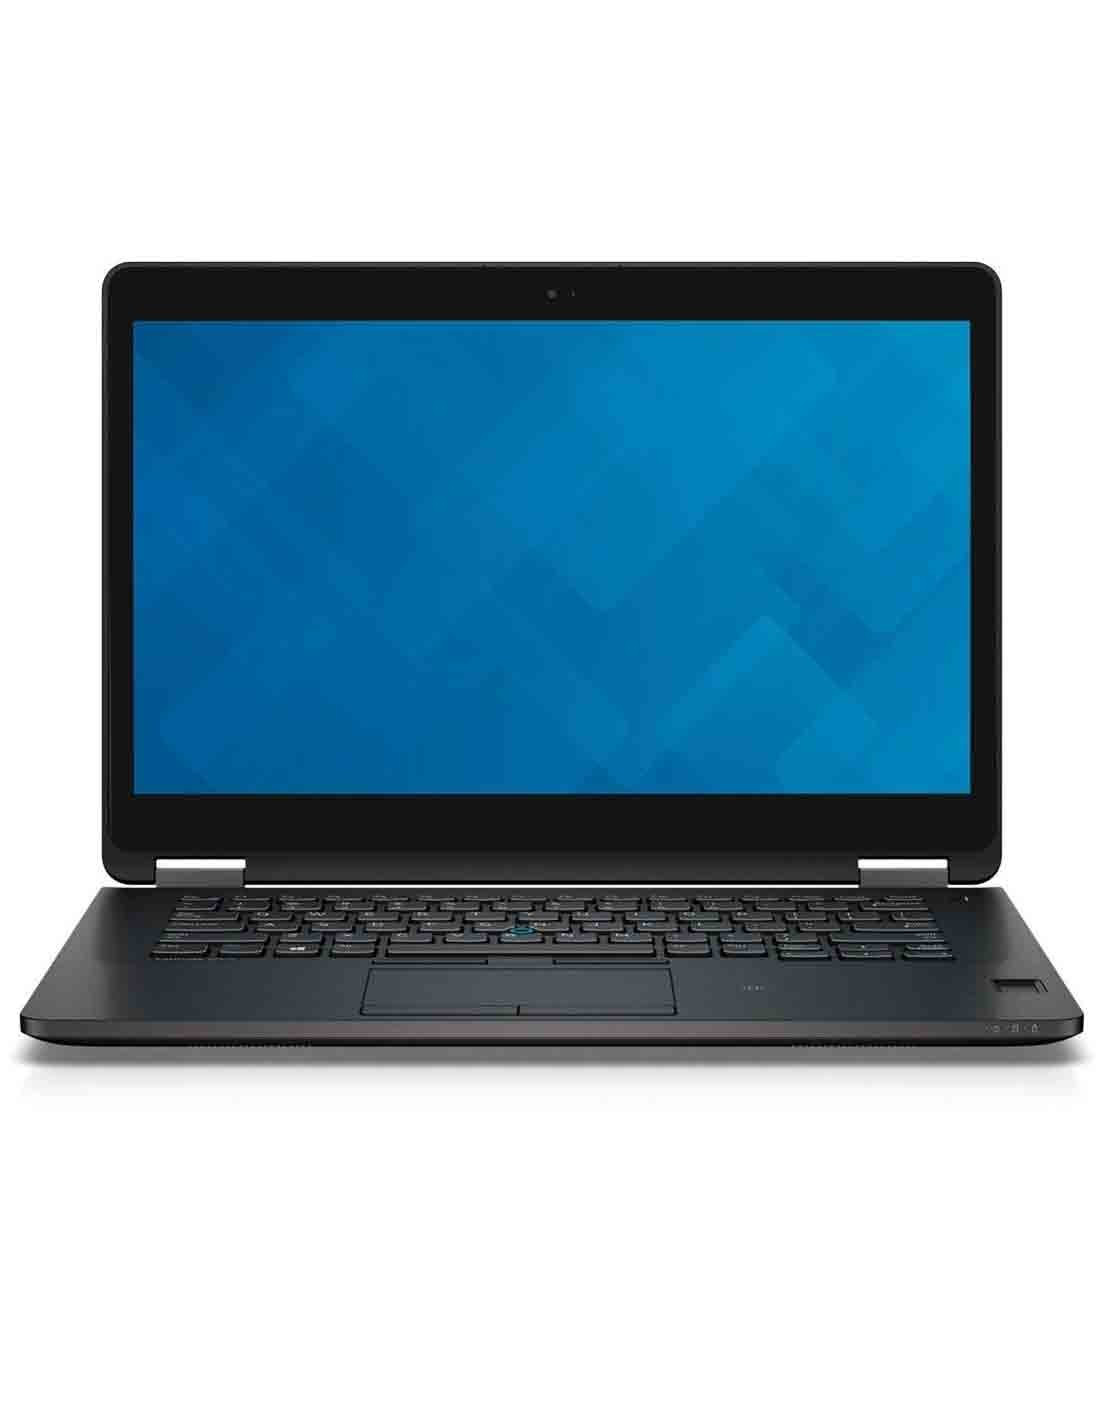 Buy Online Dell Latitude E7470 Core i7 Business Laptop at an Affordable Price in Dubai